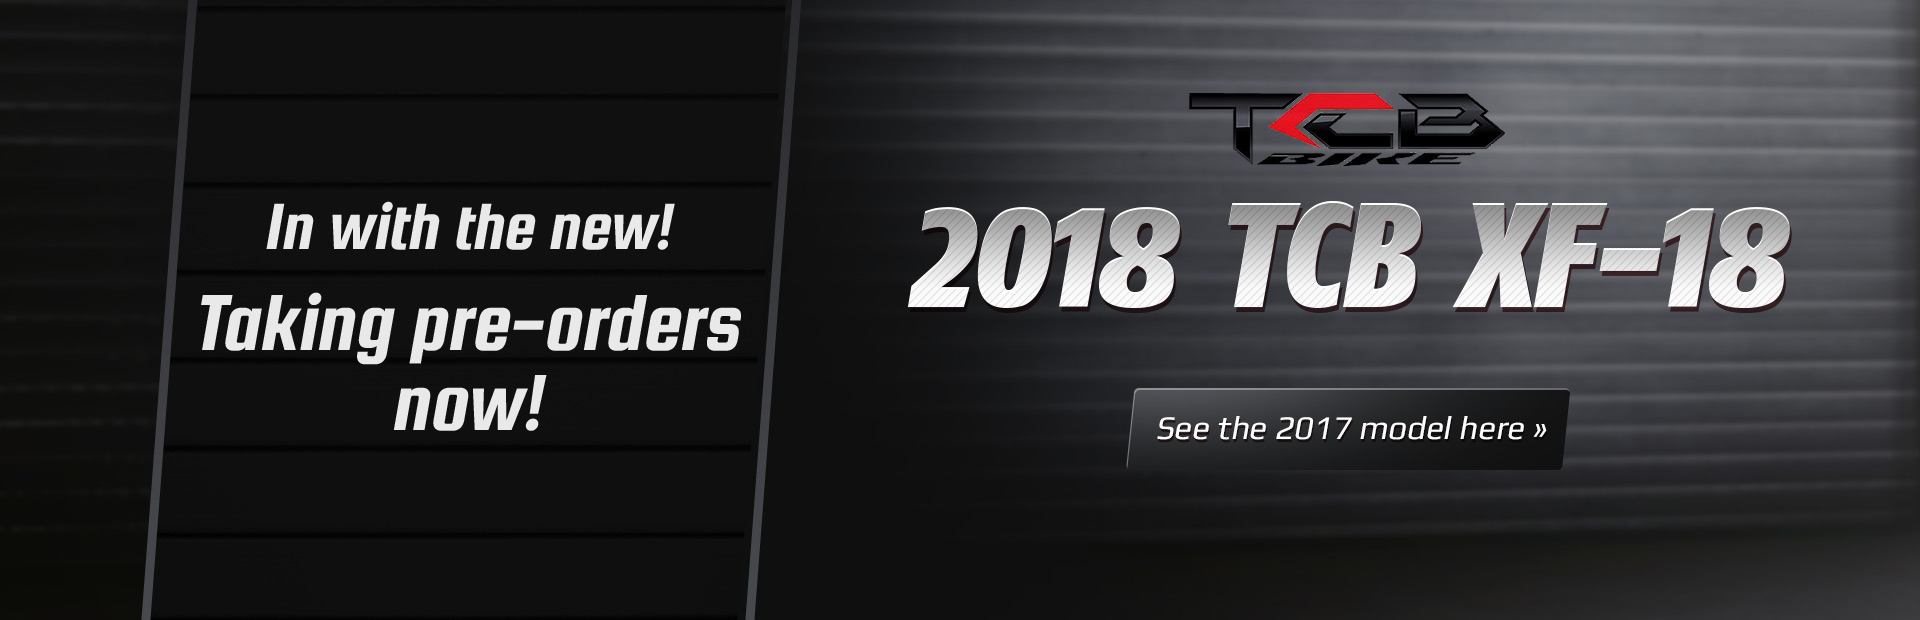 We are taking pre-orders for the 2018 TCB XF-18 now! Click here to see the 2017 model.